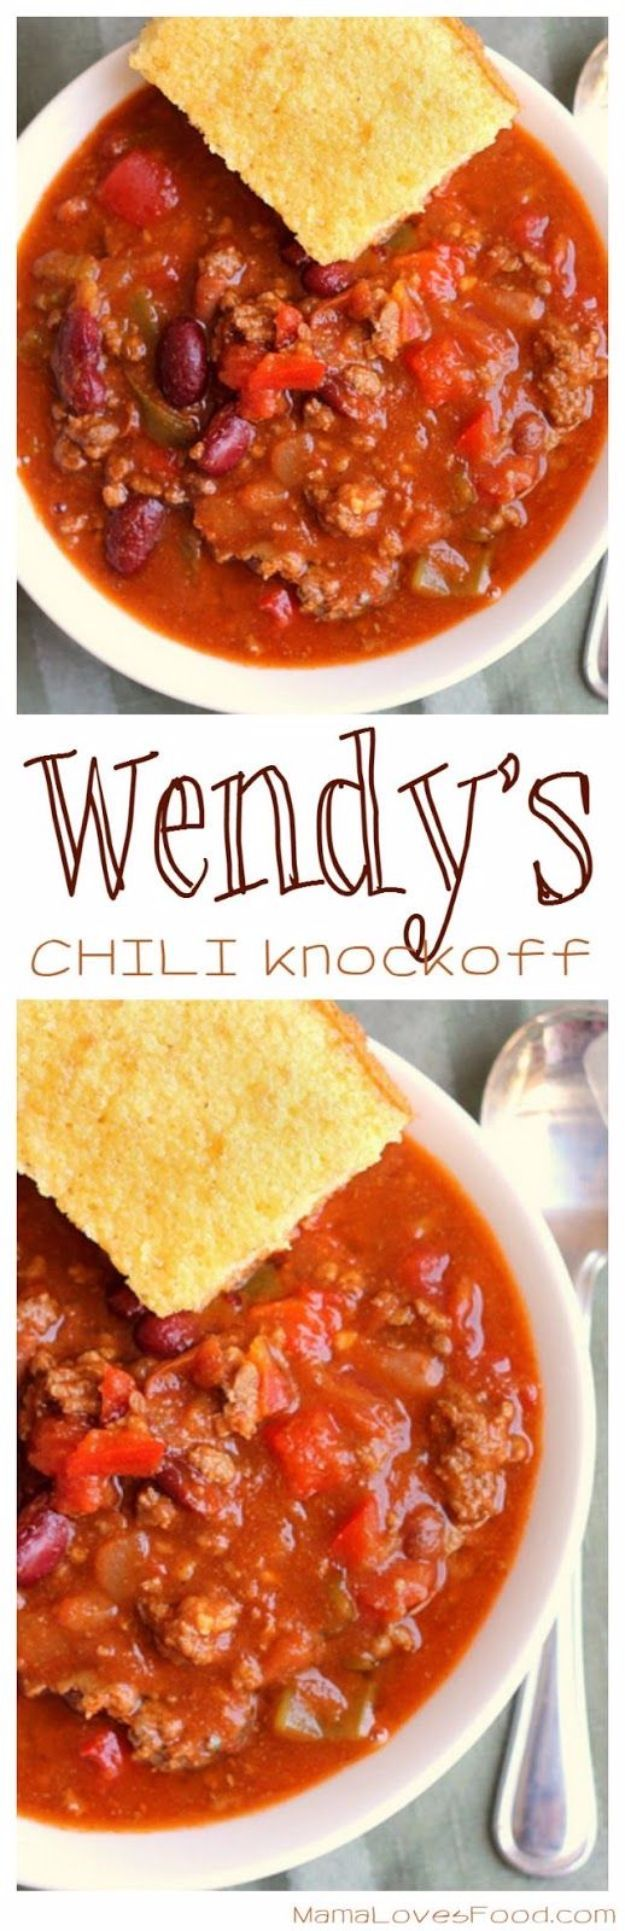 50 More Best Copycat Recipes From Top Restaurants - Wendy's Chili Knock Off - Awesome Recipe Knockoffs and Recipe Ideas from Chipotle Restaurant, Starbucks, Olive Garden, Cinabbon, Cracker Barrel, Taco Bell, Cheesecake Factory, KFC, Mc Donalds, Red Lobster, Panda Express http://diyjoy.com/best-copycat-restaurant-recipes